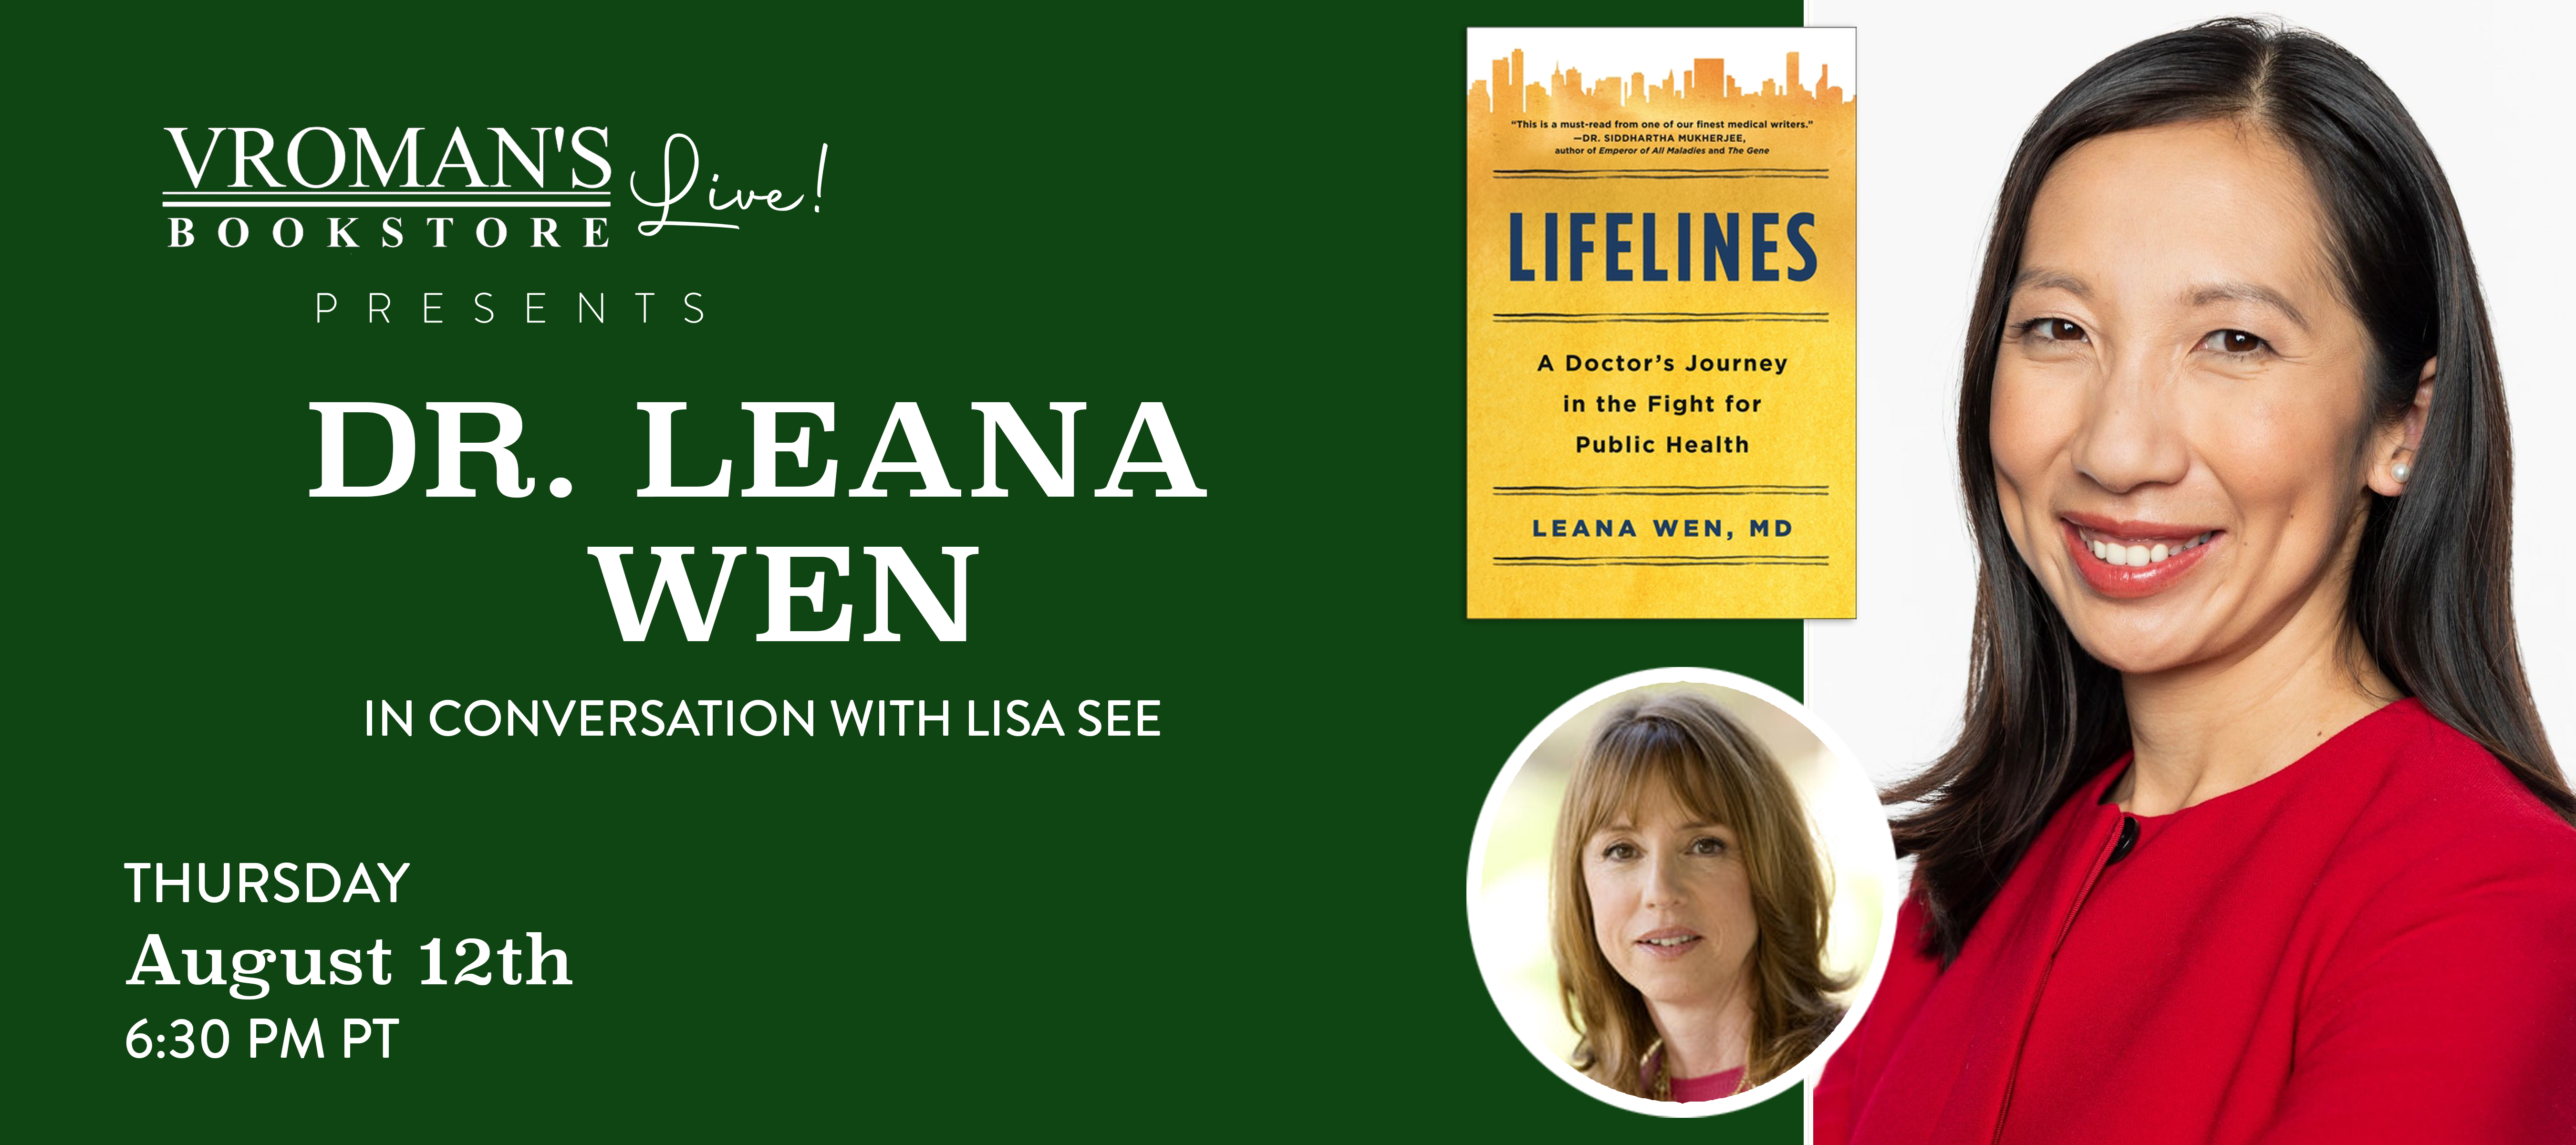 Image of Banner for Dr. Leana Wen, in conversation with Lisa See, discusses Lifelines: A Doctor's Journey in the Fight for Public Health